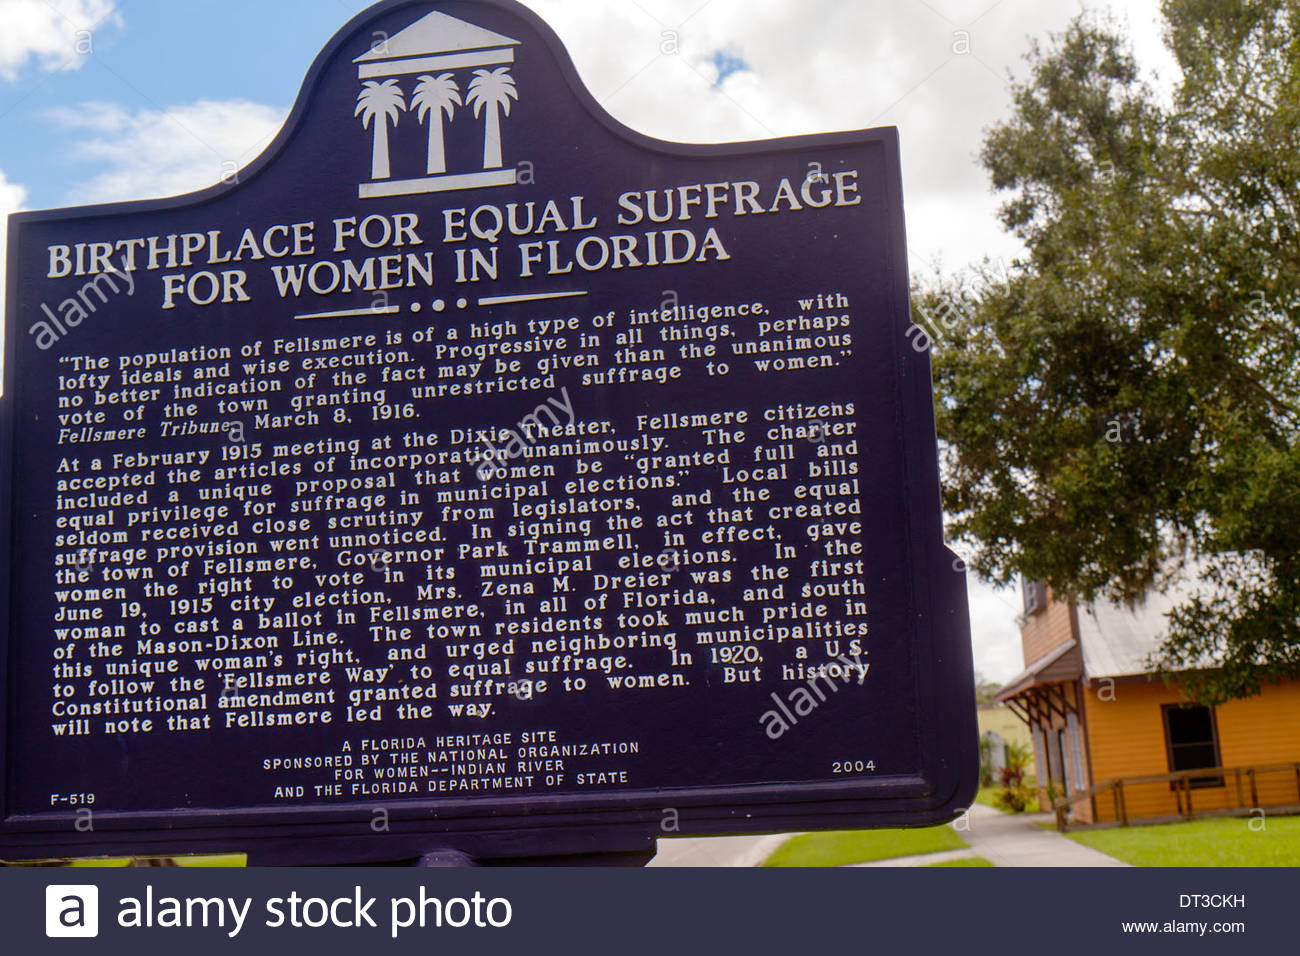 Florida Indian River County Fellsmere Florida Heritage Site marker Birthplace for Equal Suffrage for Women in Florida suffrage - Stock Image